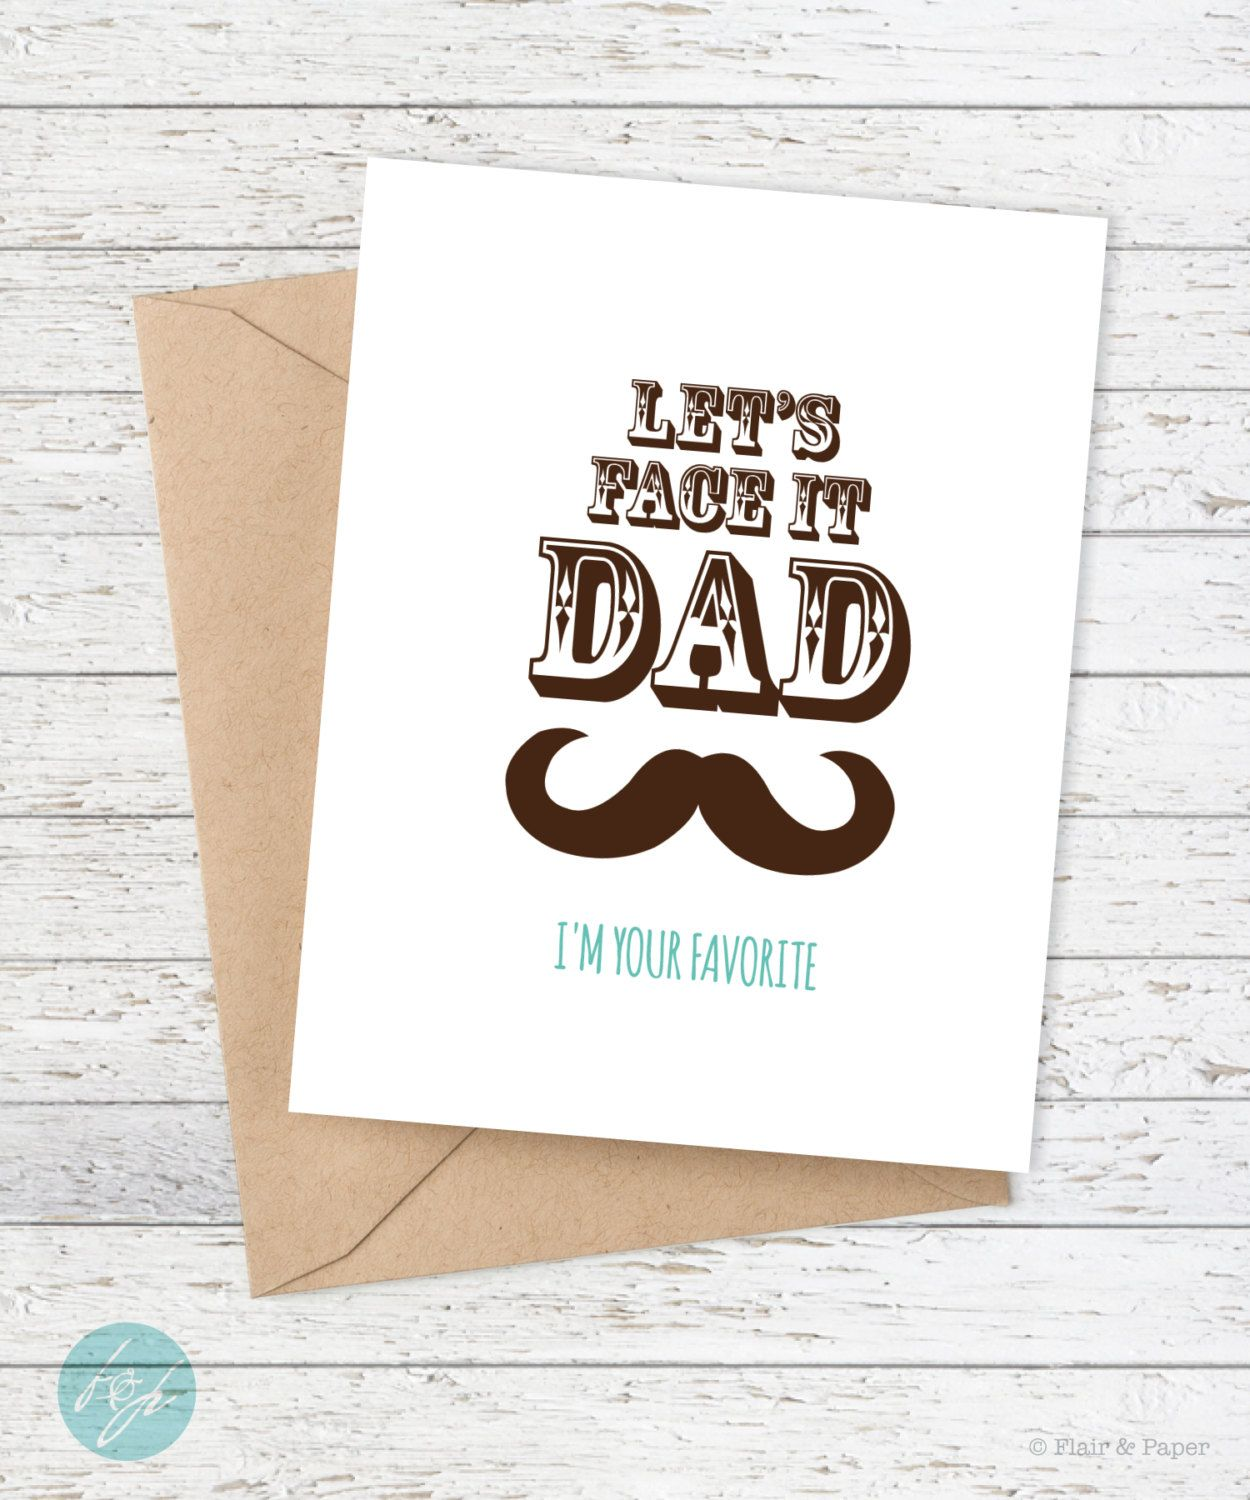 Funny fathers day card dad birthday card father birthday funny fathers day card dad birthday card father birthday lets face it dad bookmarktalkfo Gallery